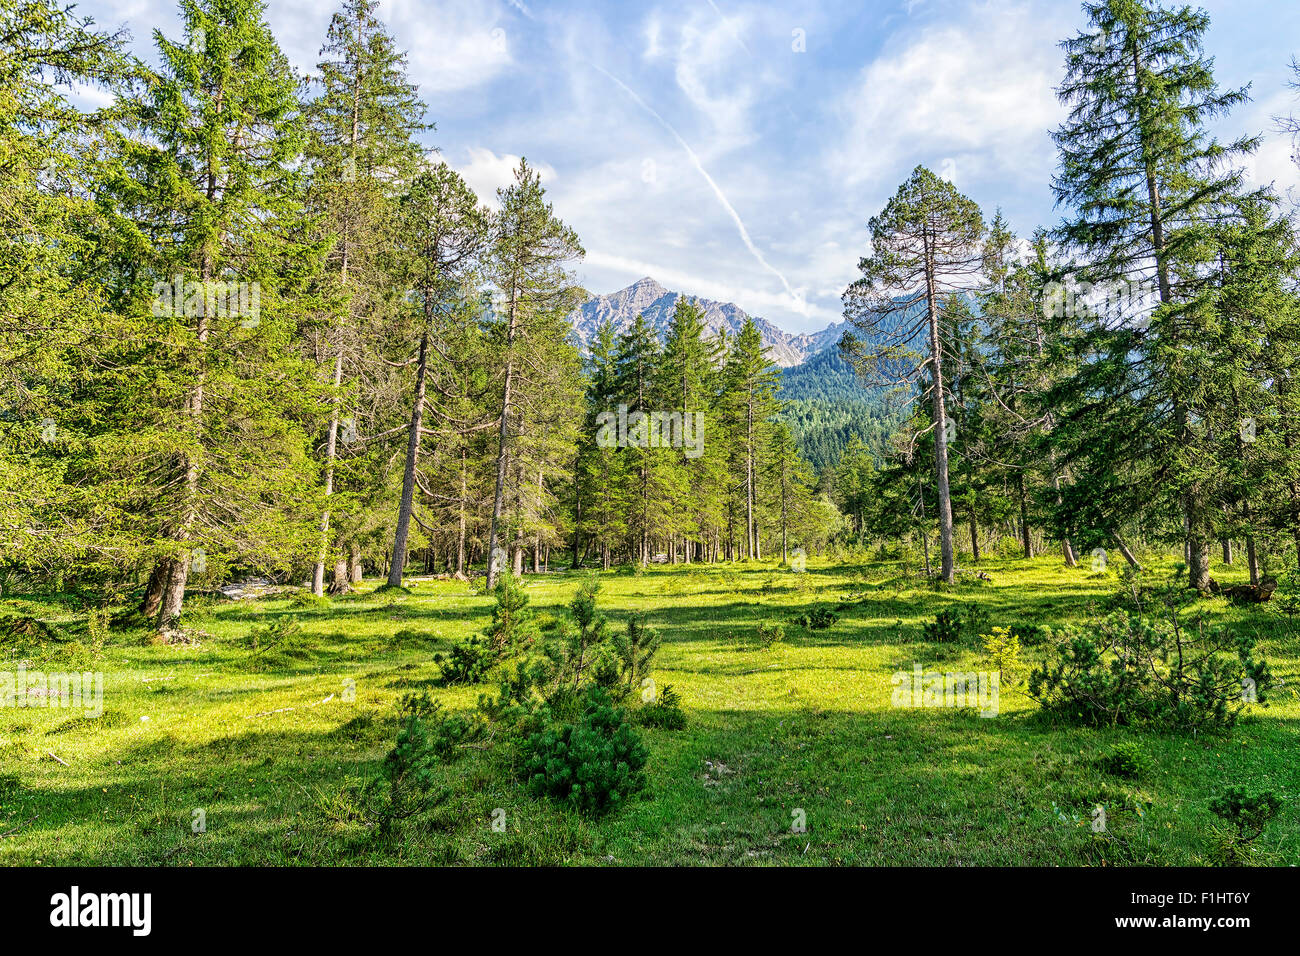 Image of the landscape with trees and alps near river Isar and Karwendel in Bavaria, Germany - Stock Image